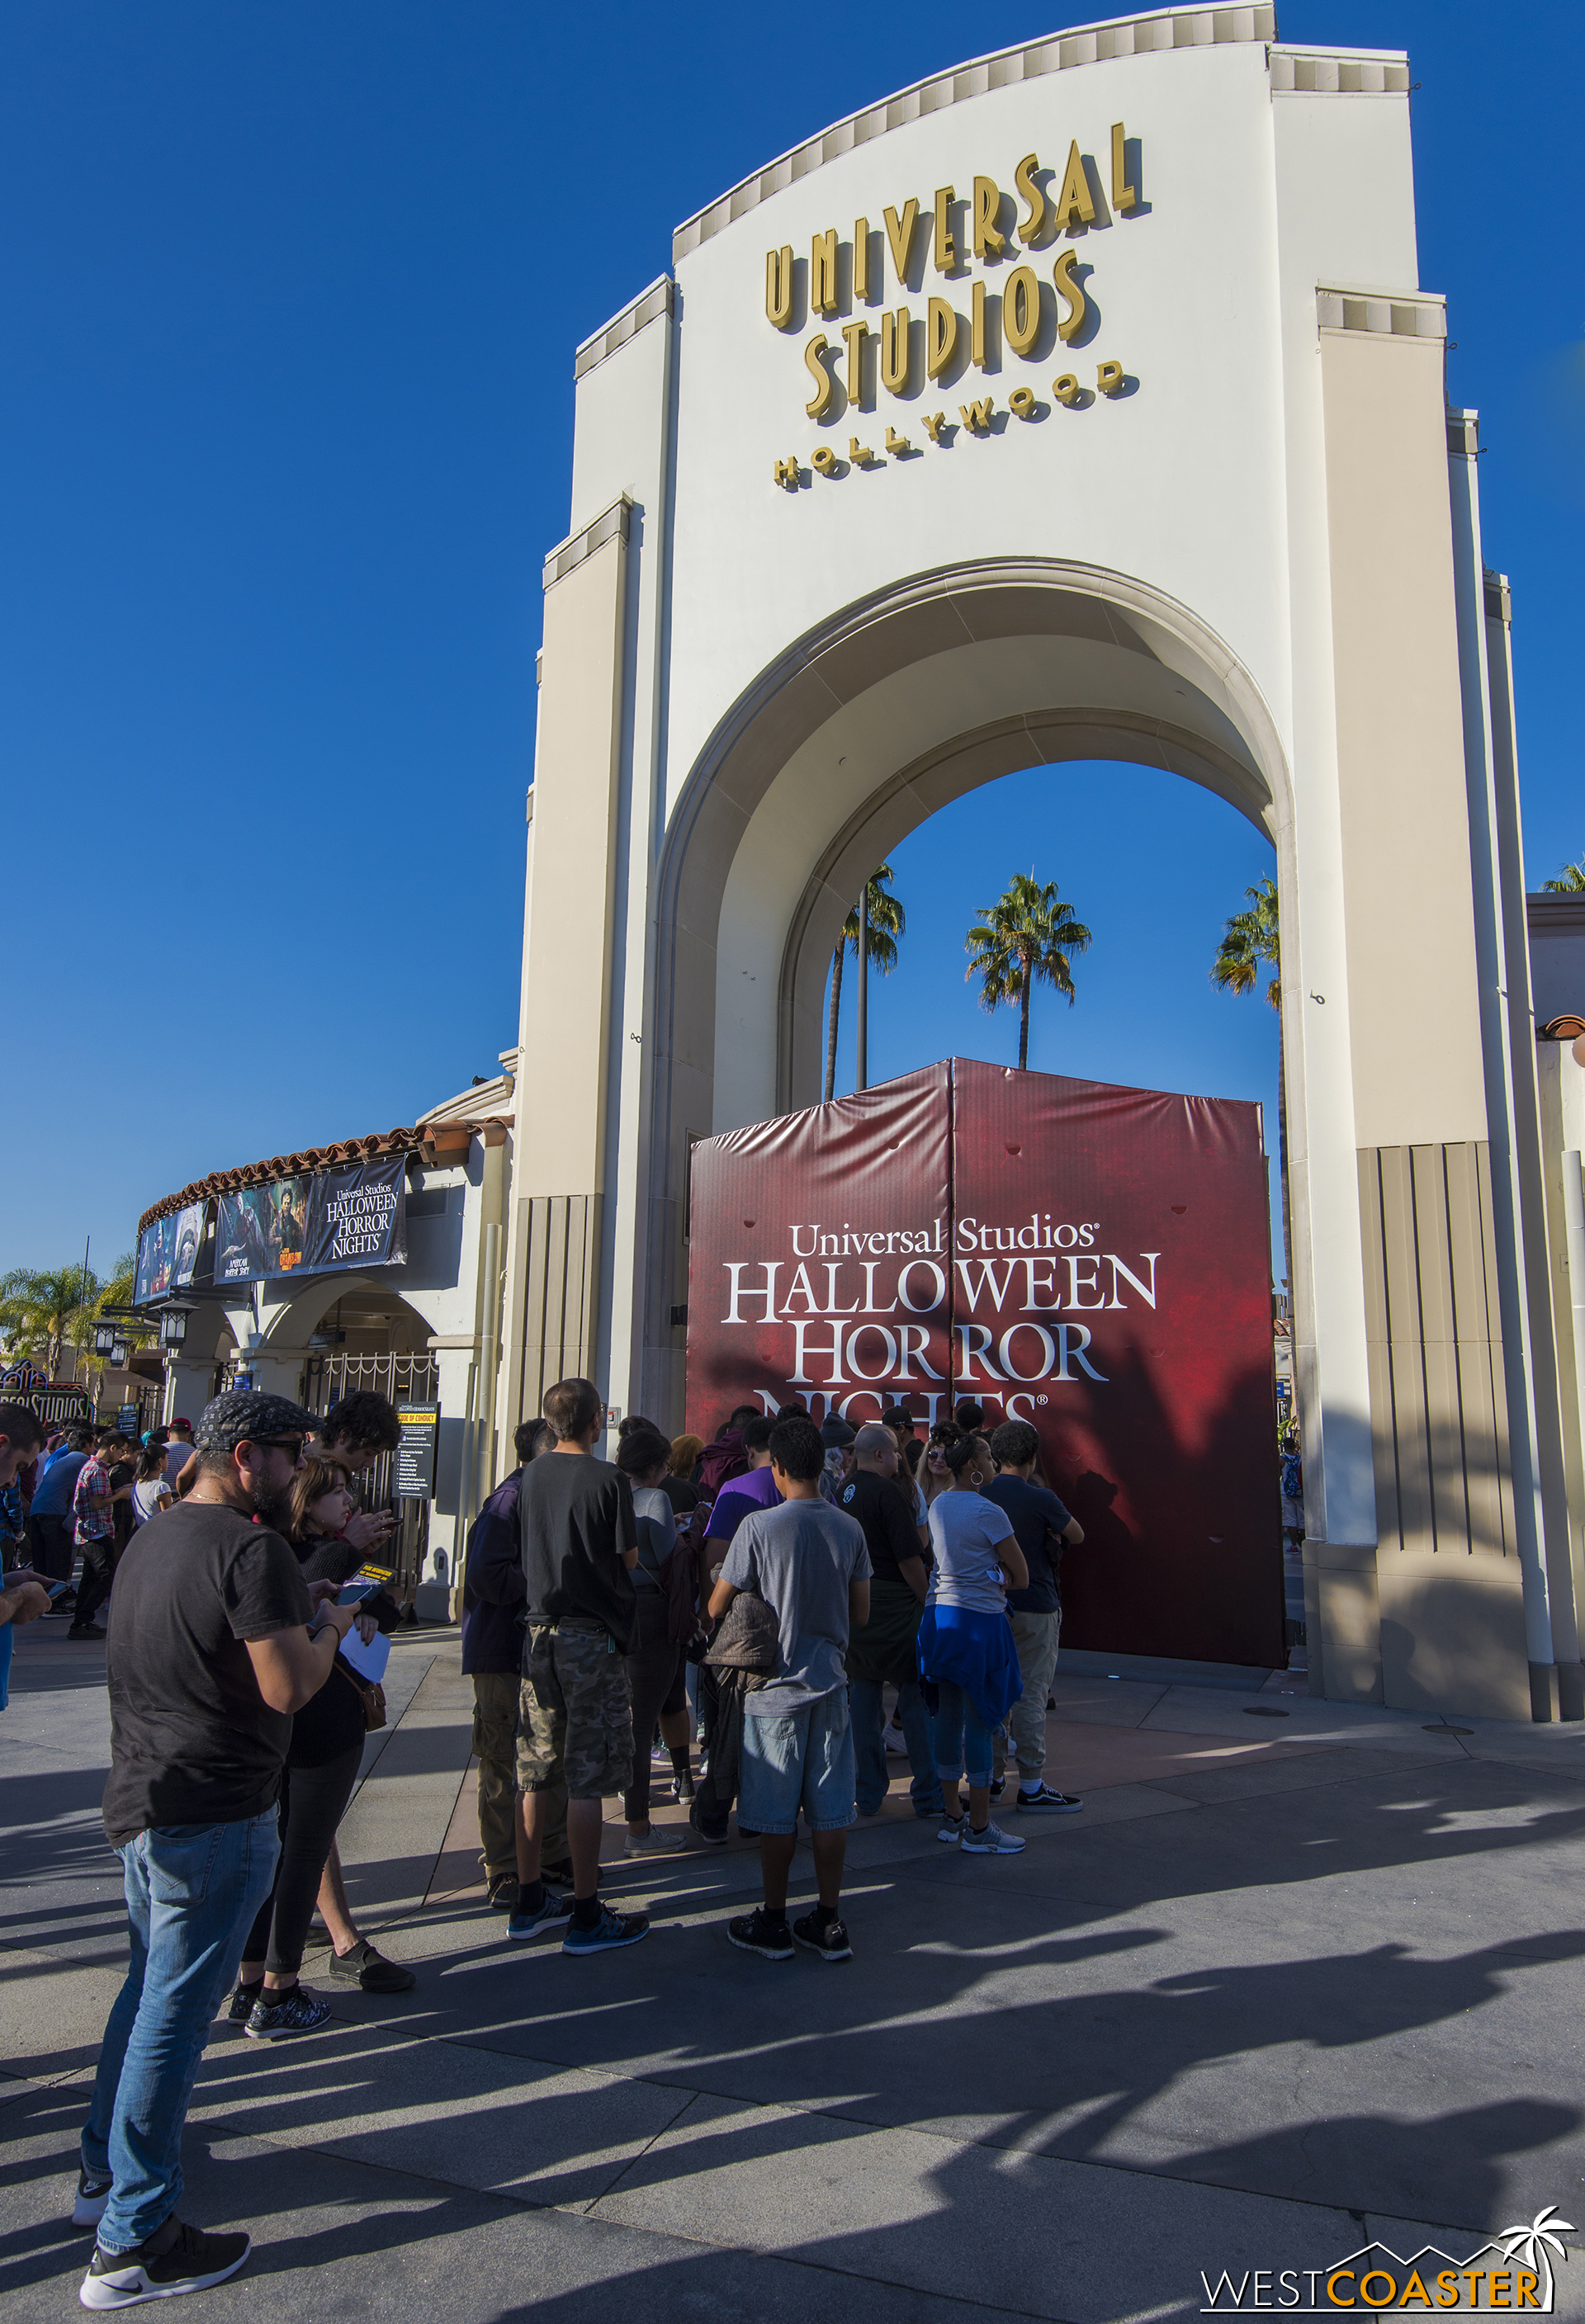 Fans line up early, two hours before official Horror Nights gate opening, to take advantage of early entry into the event and gain an extra 30-45 minutes to experience the event.  Unfortunately for me, even doing this was not enough to allow time to do everything.